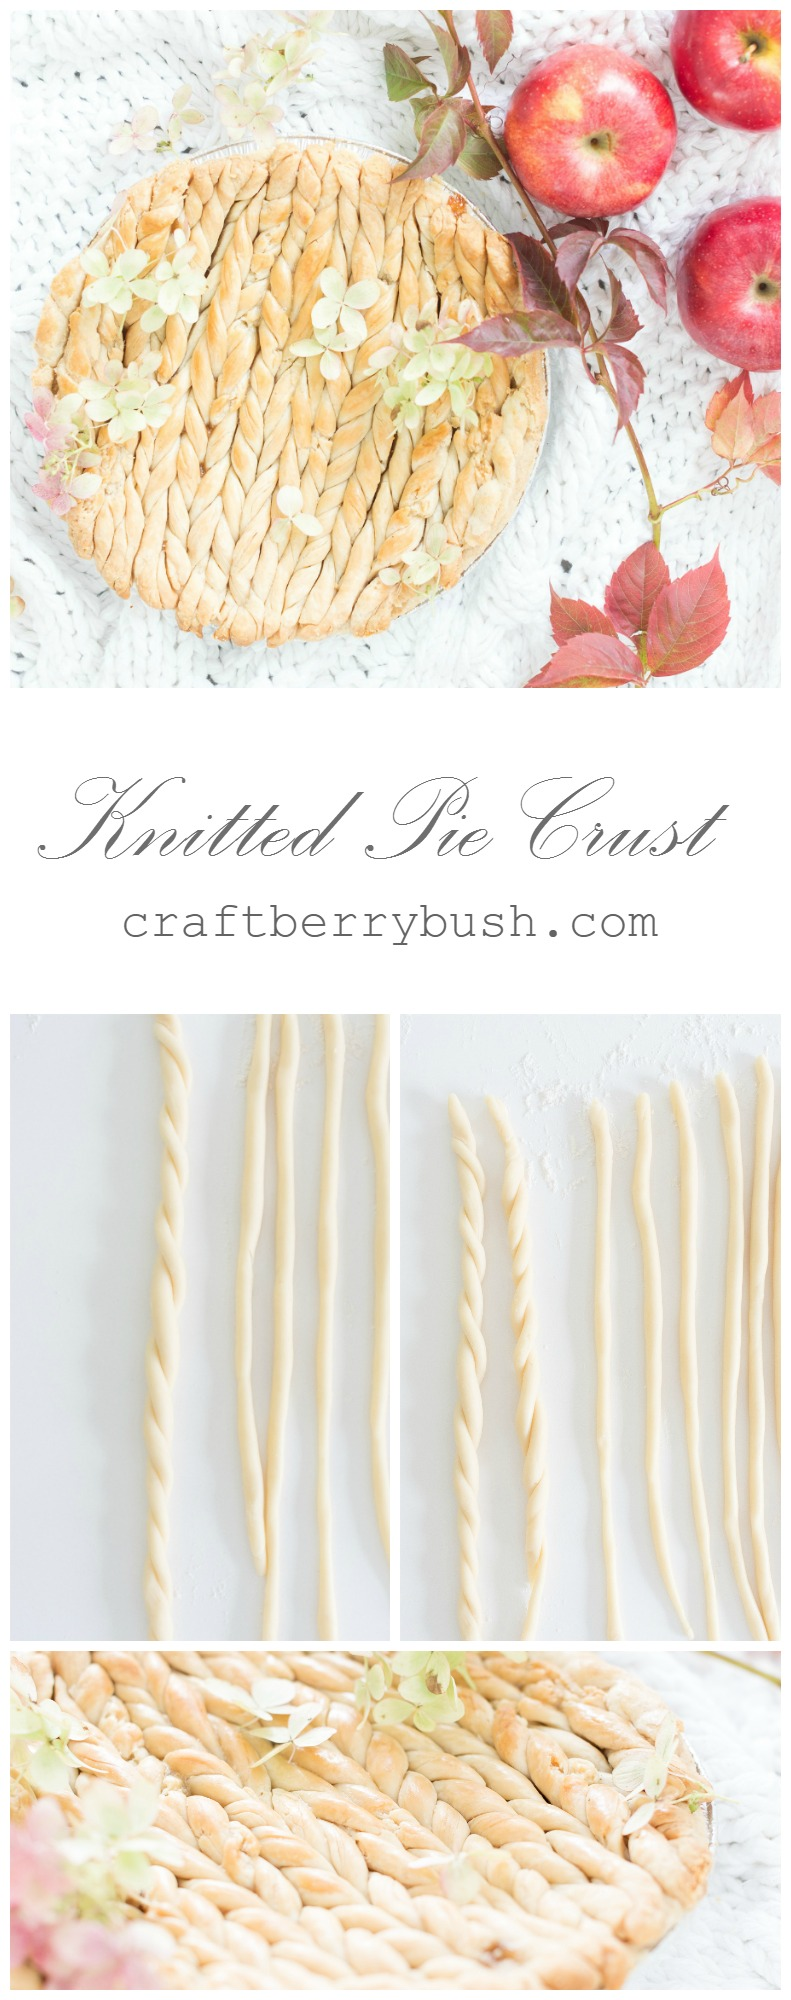 Knitted pie crust tutorial by Craftberrybush